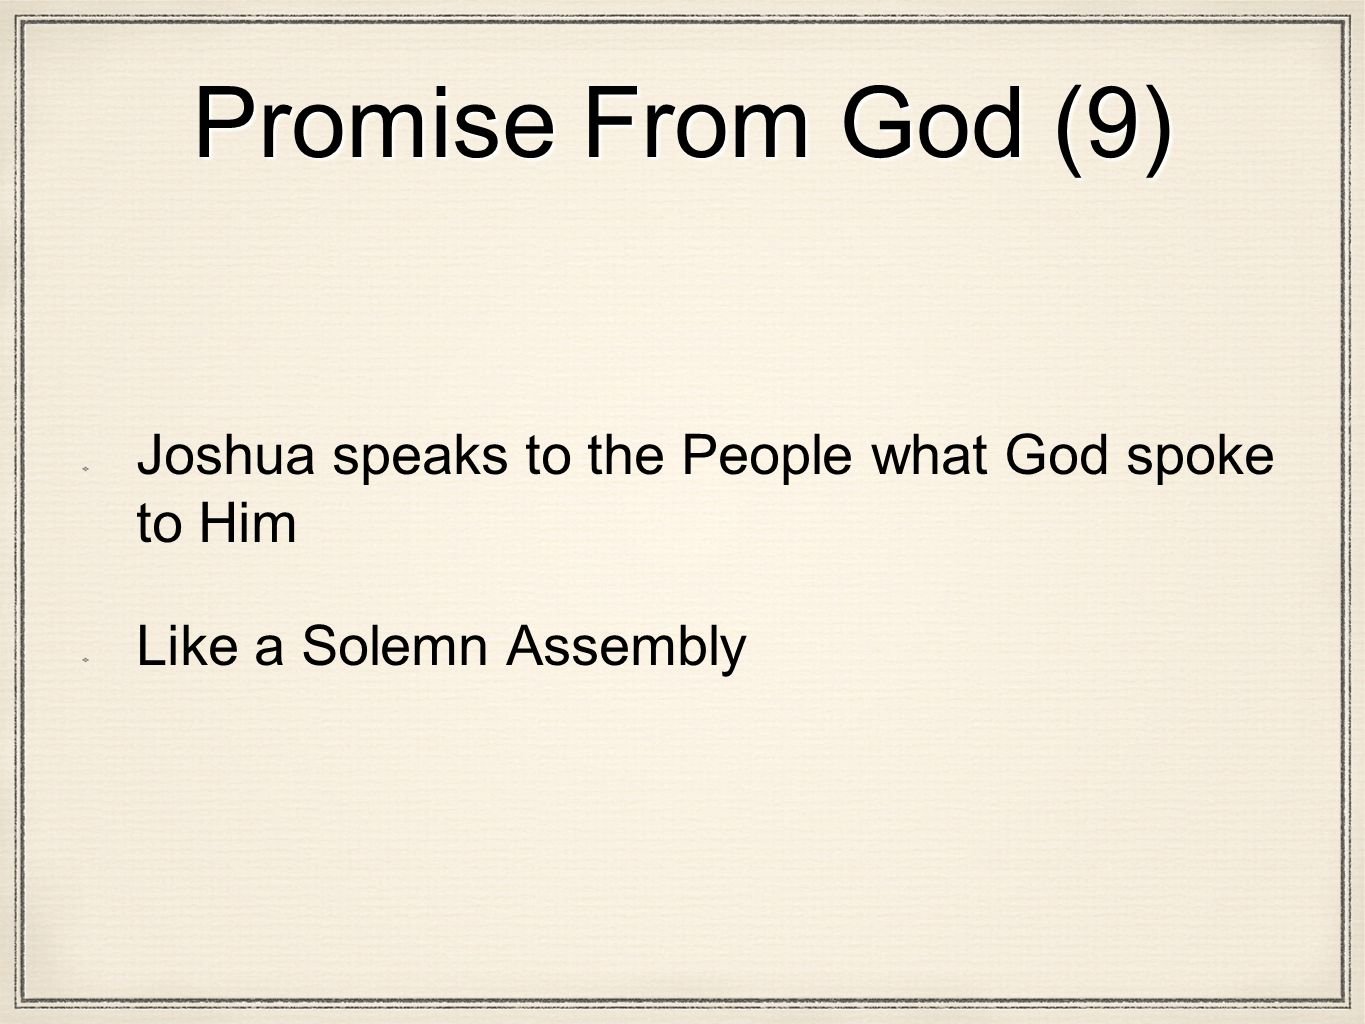 Promise From God (9) Joshua speaks to the People what God spoke to Him Like a Solemn Assembly